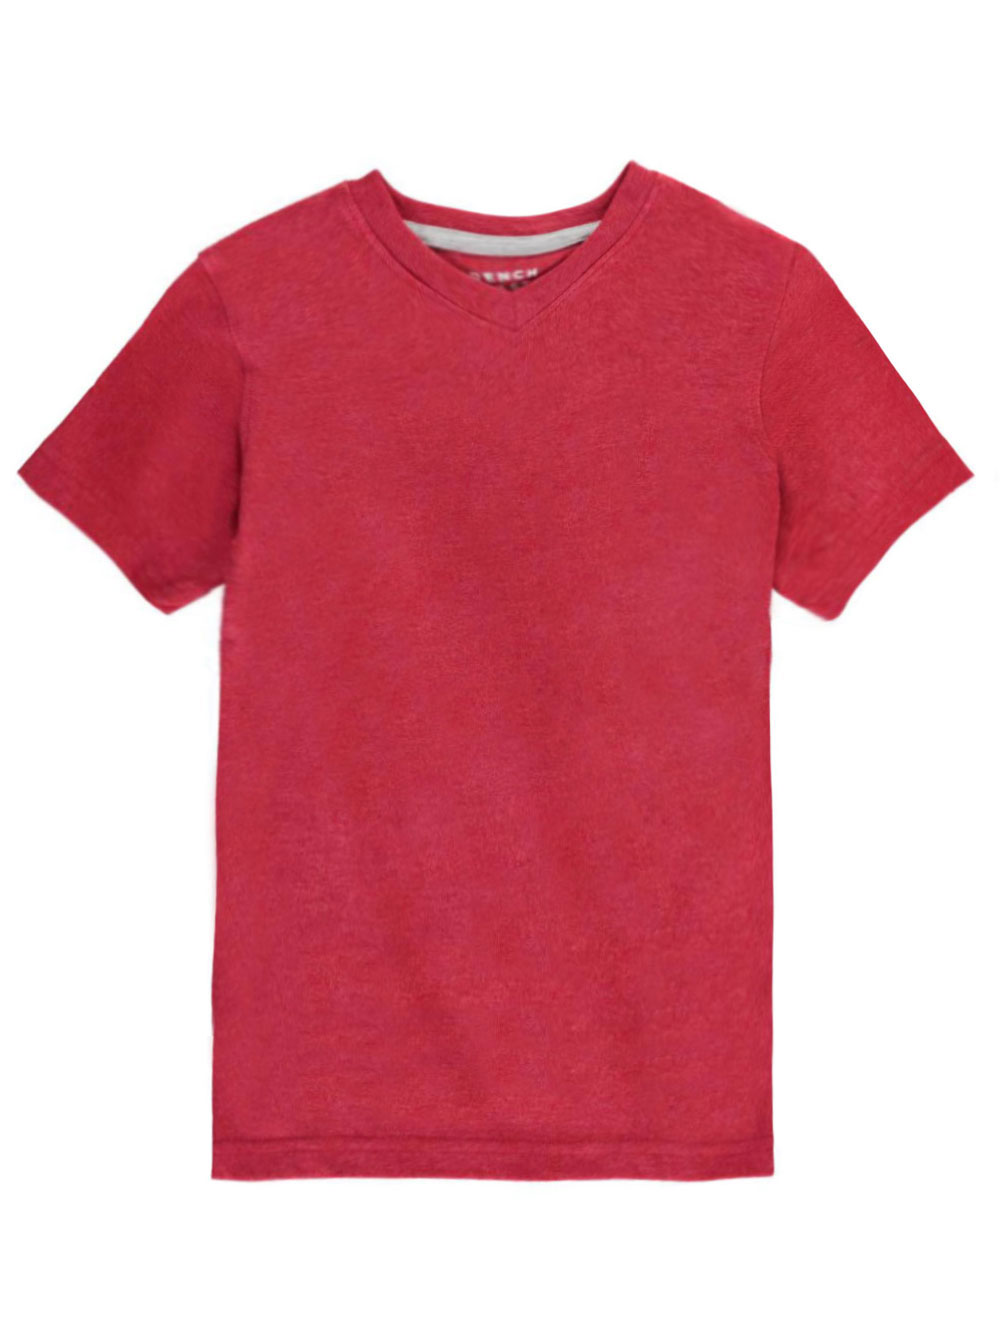 Image of French Toast Little Boys VNeck TShirt Sizes 4  7  heather red 7